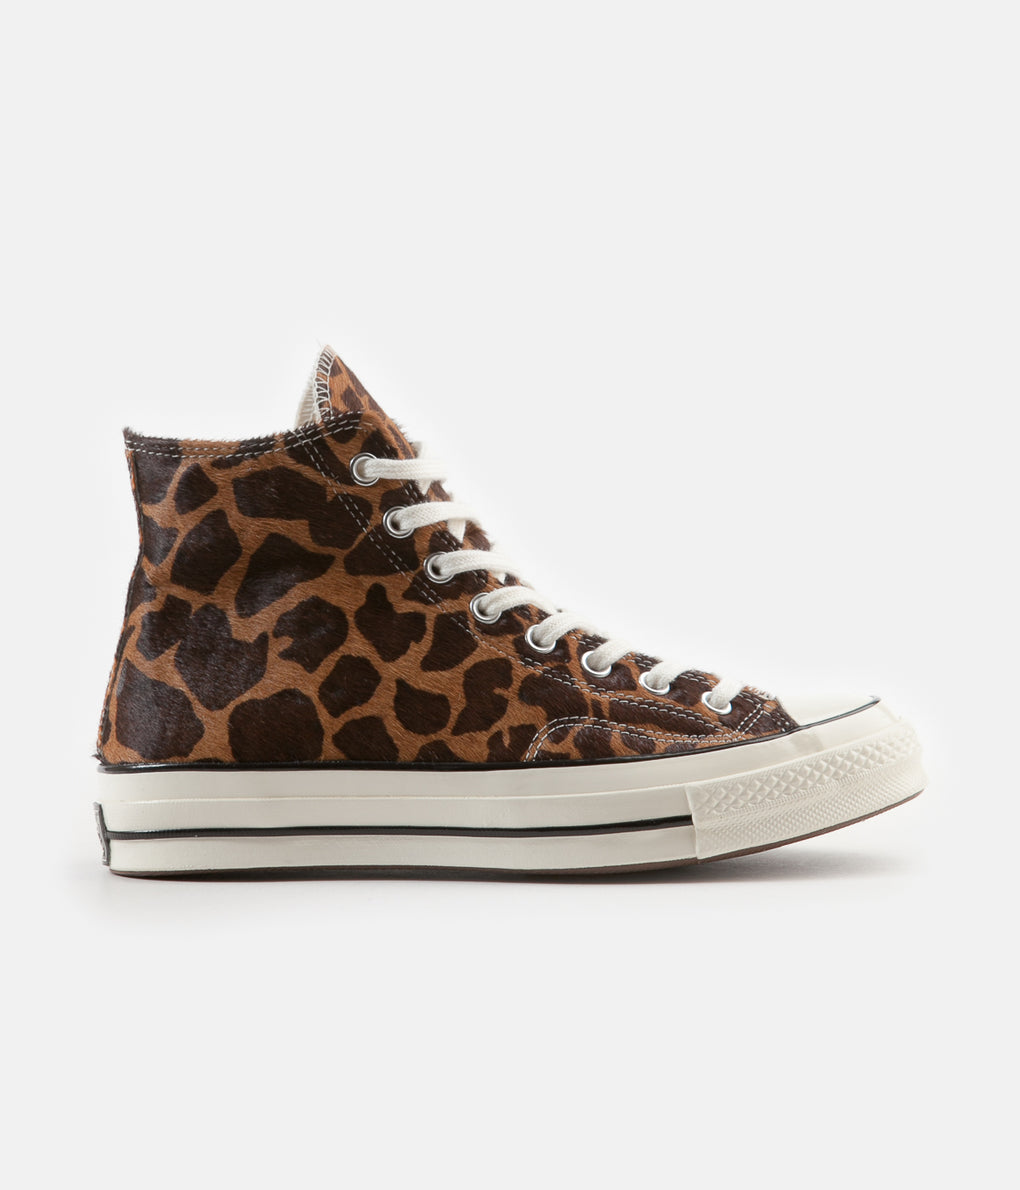 Converse Pony Pack CTAS 70's Hi Shoes - Brown / Tan / Egret